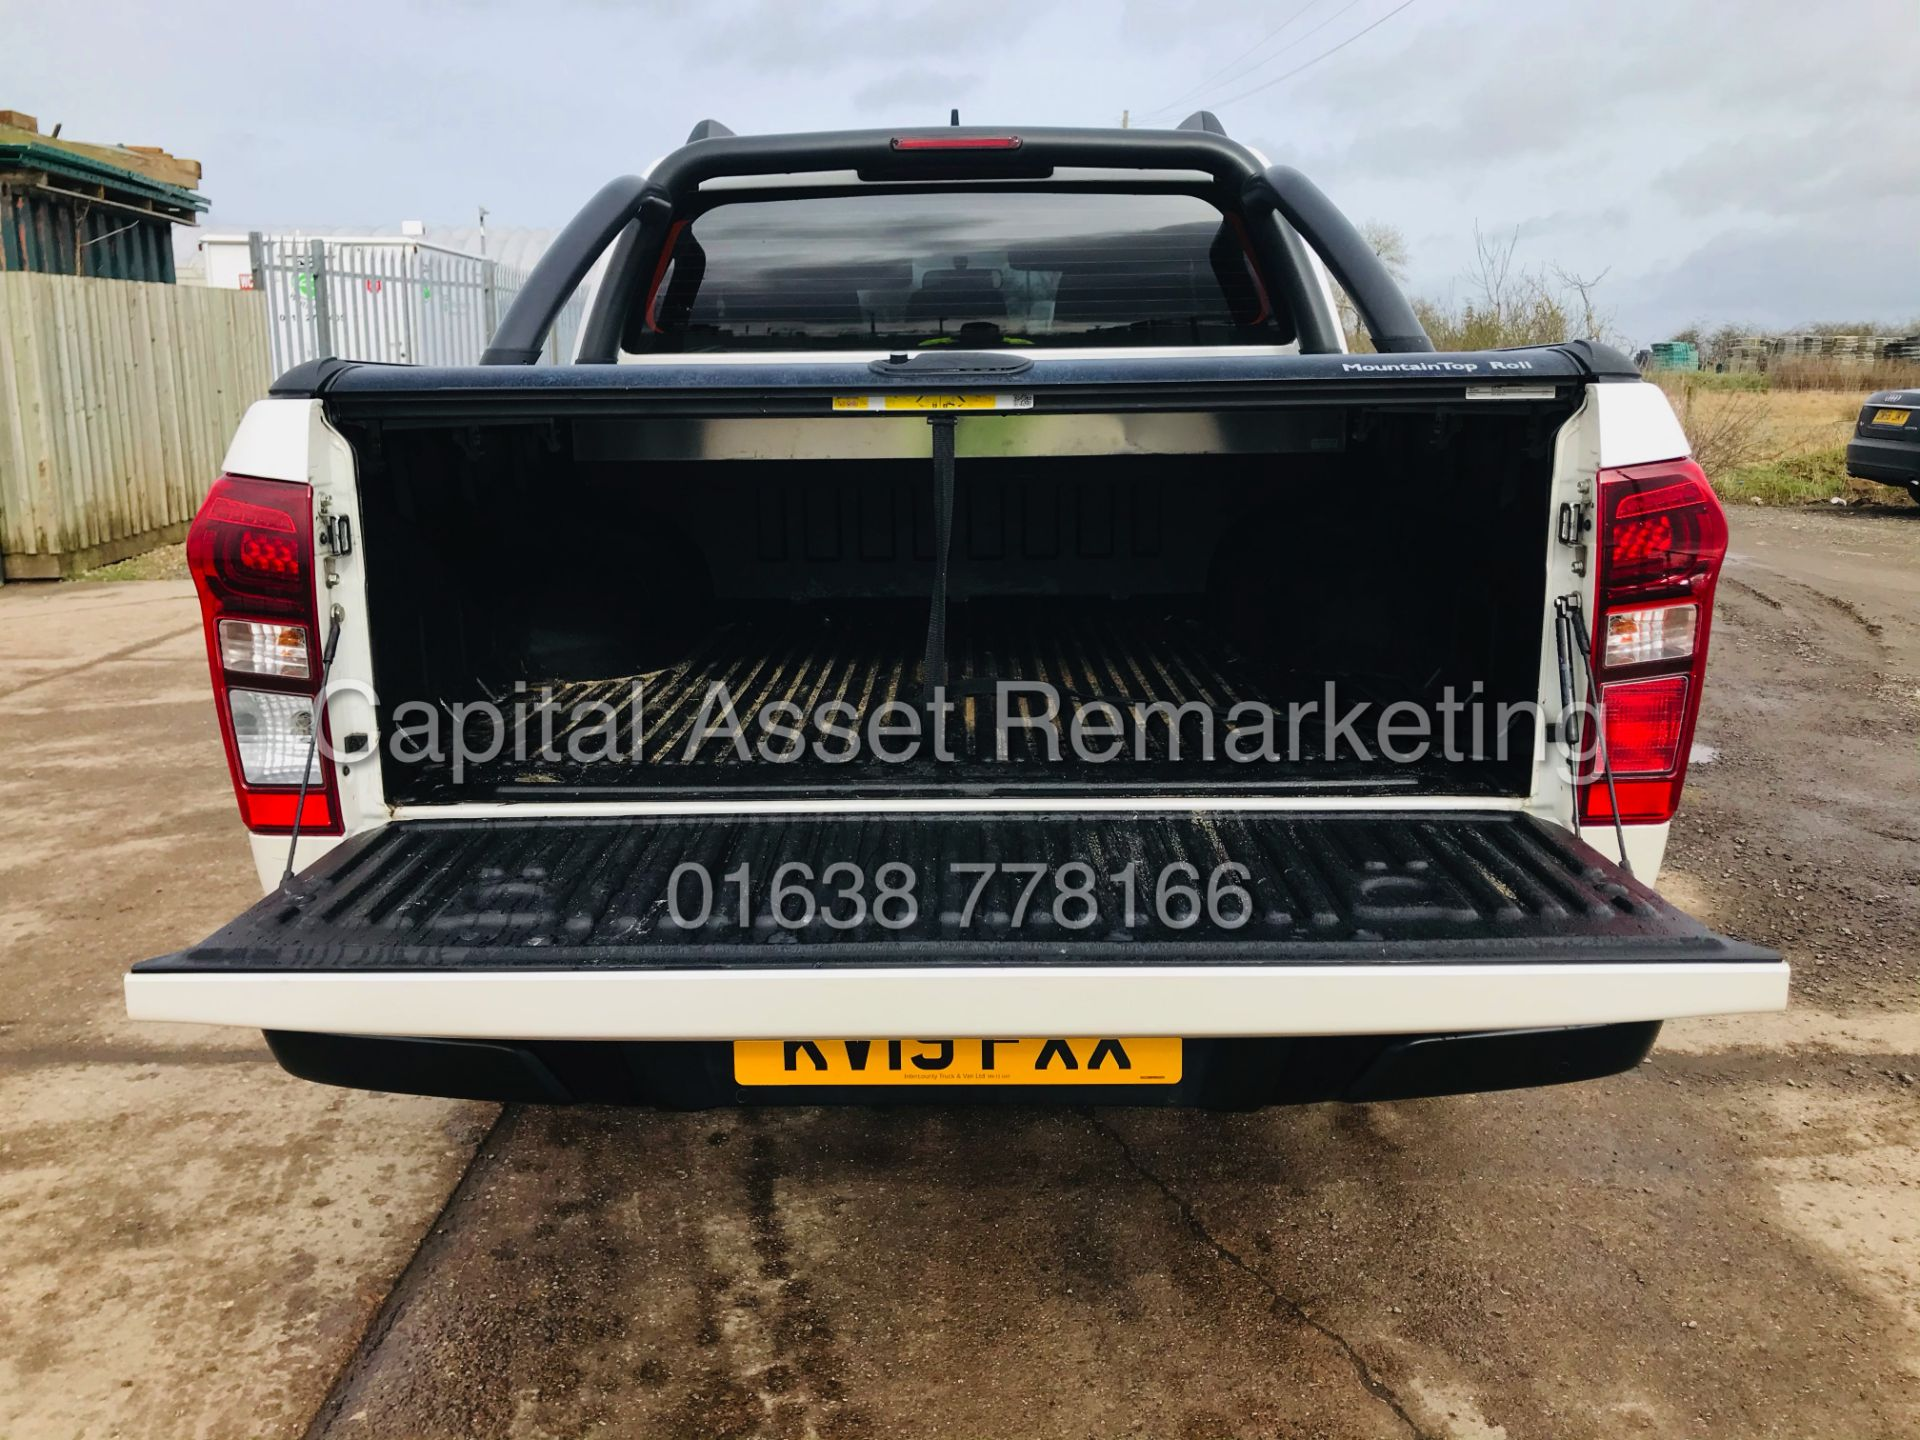 "(On Sale) ISUZU D-MAX ""BLADE"" AUTO - 1 OWNER (2019 - EURO 6) LEATHER - SAT NAV *TOP SPEC* - Image 13 of 34"